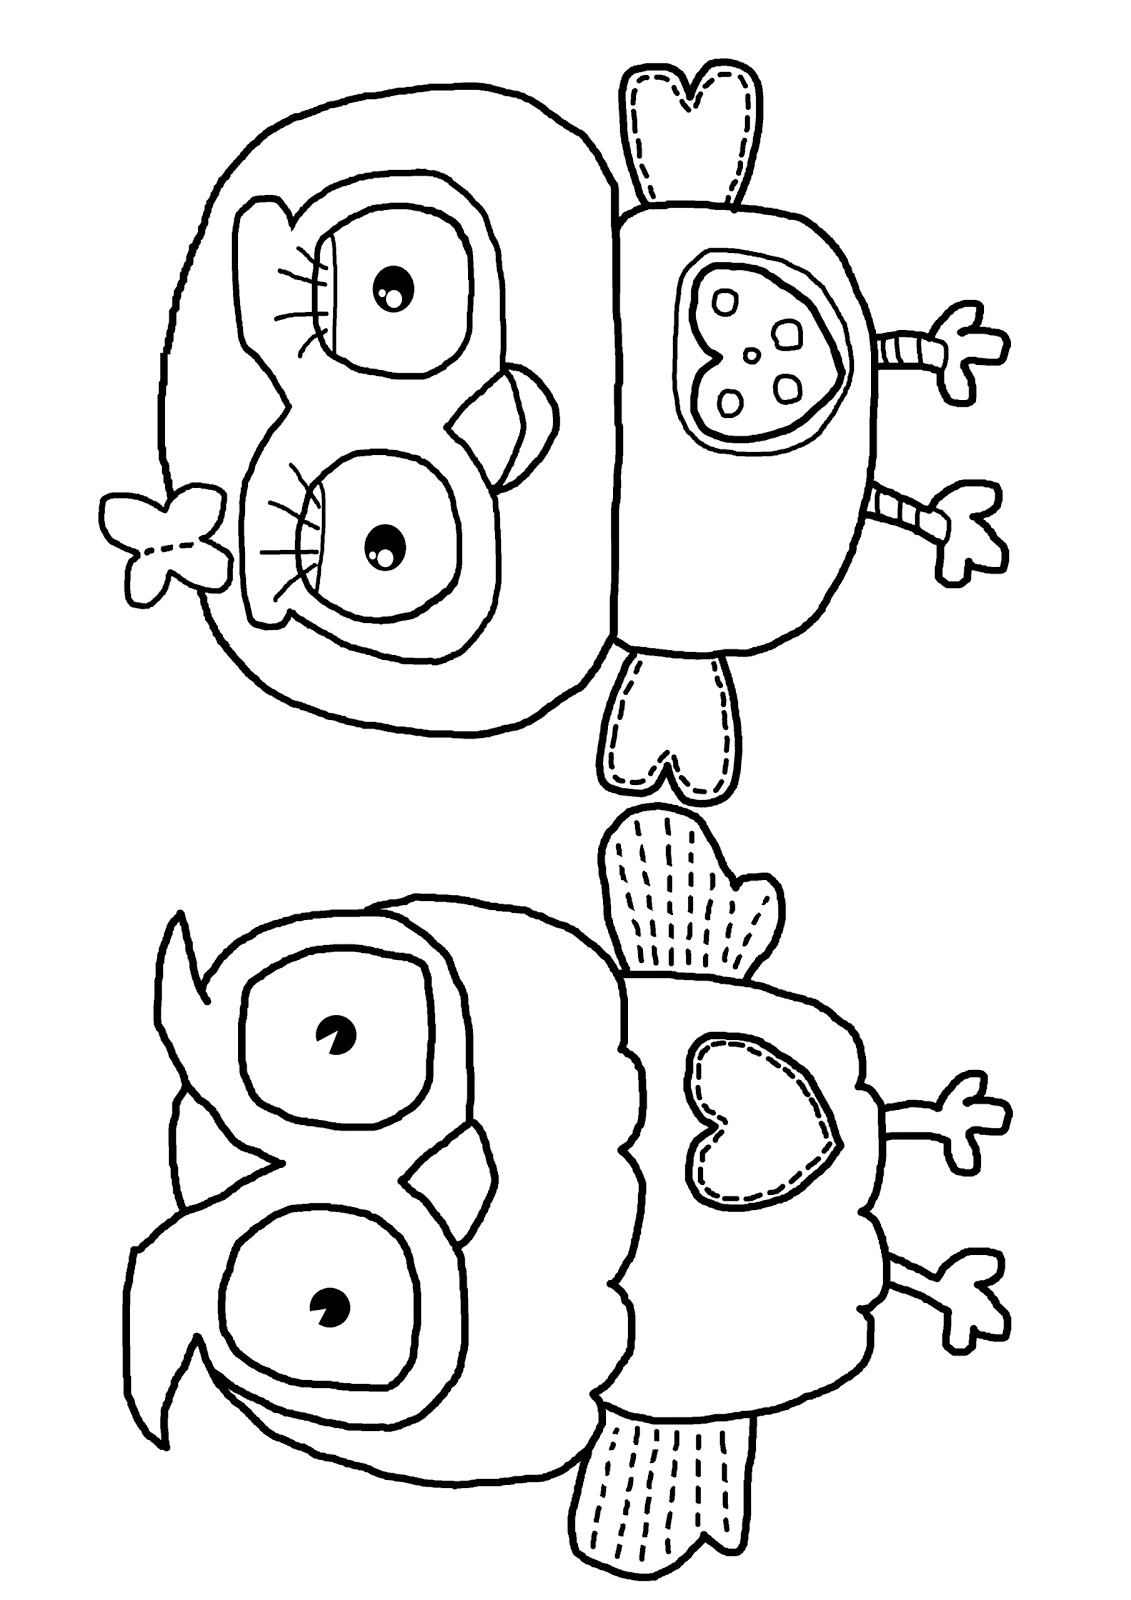 Milk Eyes: Giggle And Hoot Free Colouring Coloring Page Download